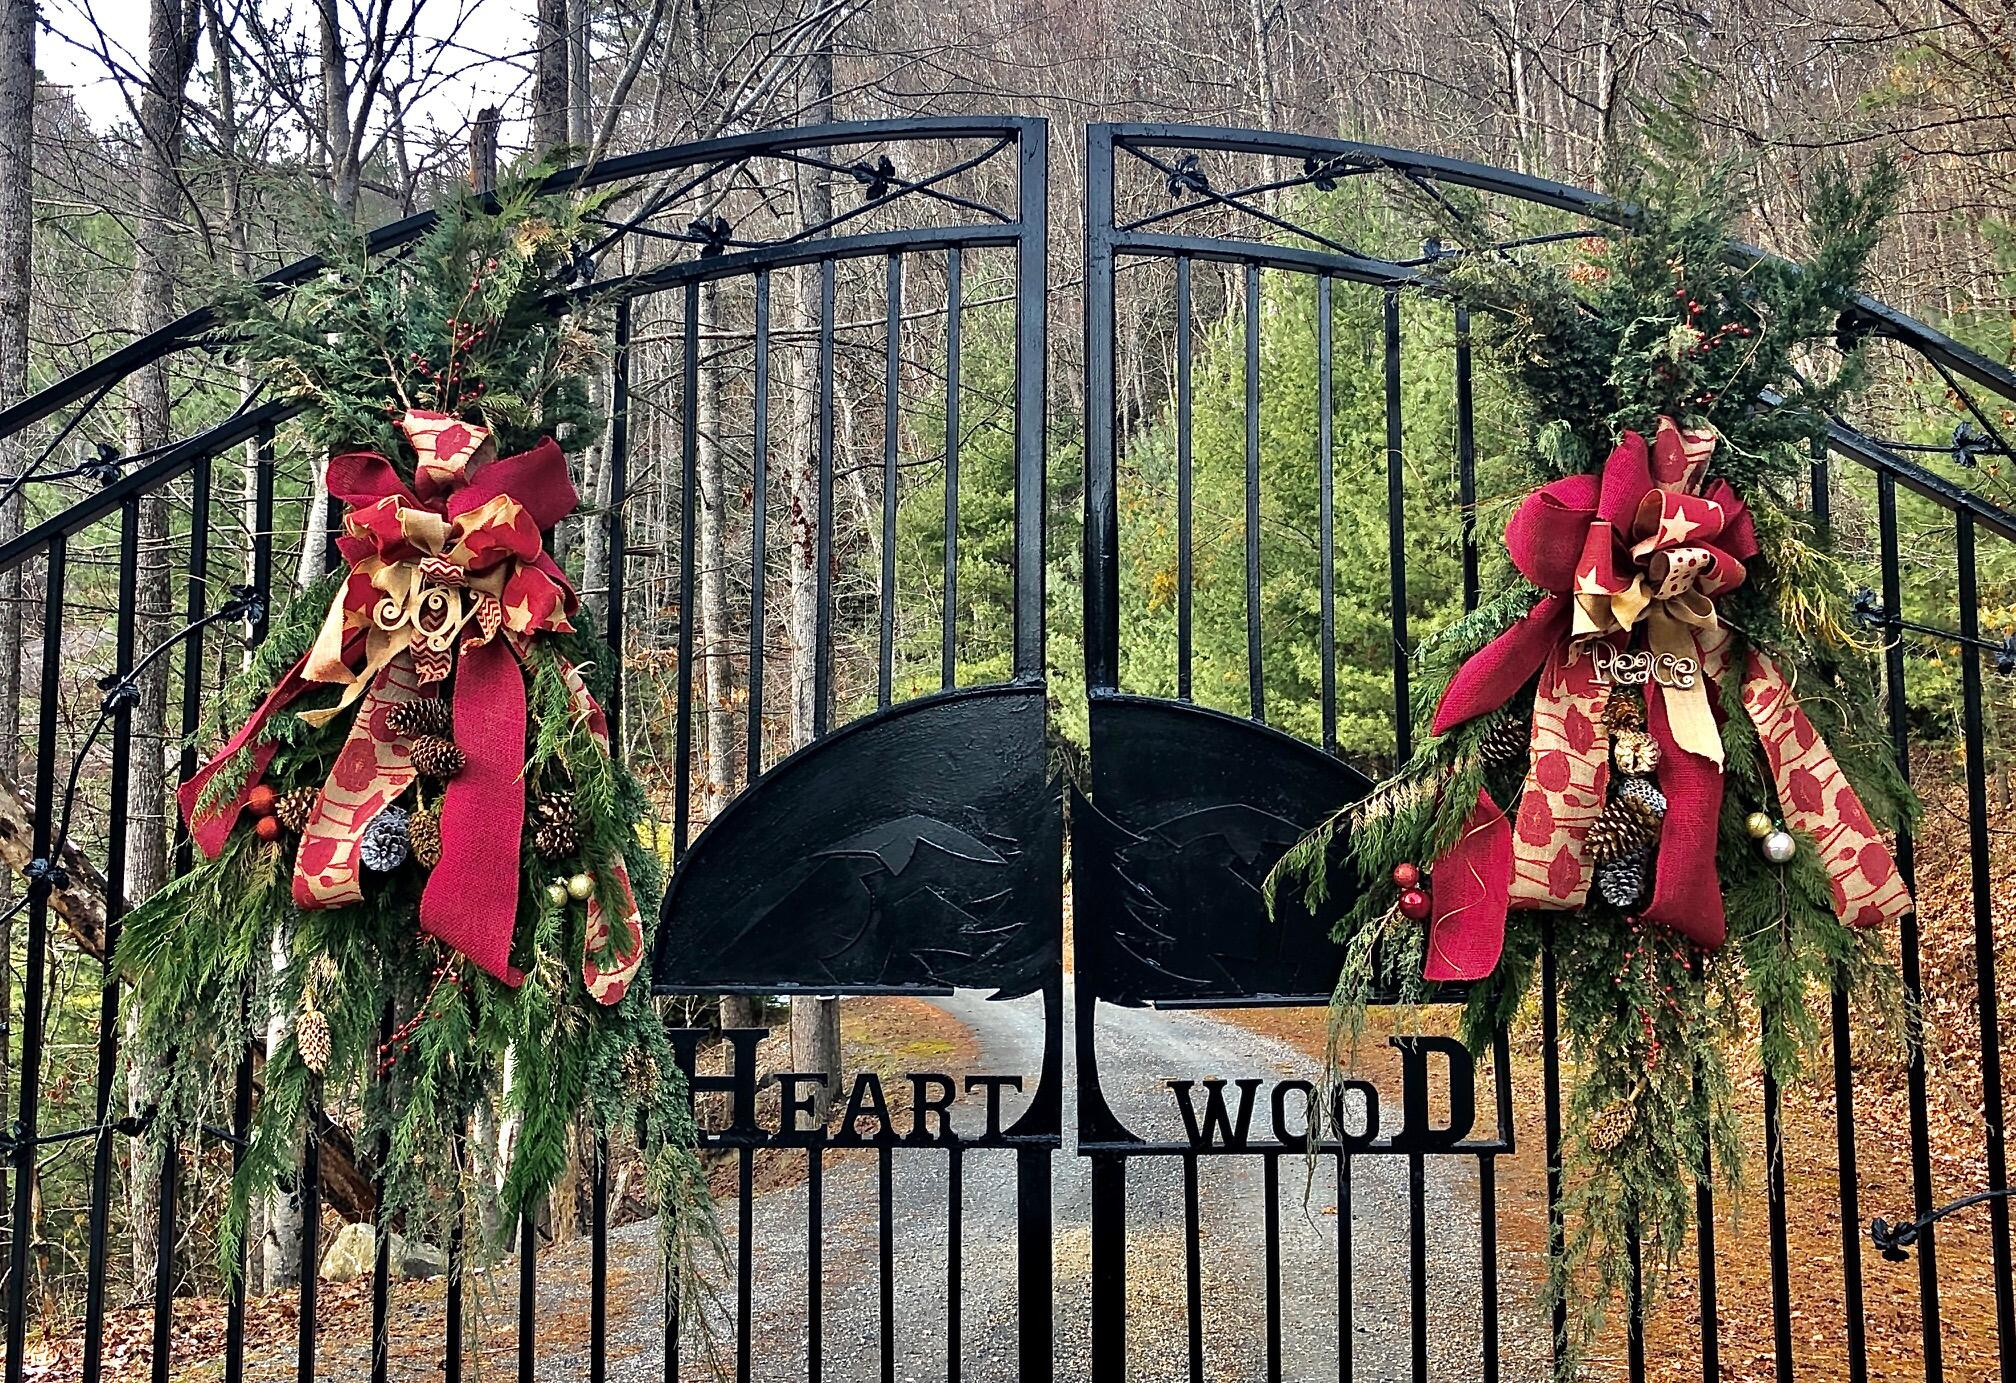 Gate to Heartwood